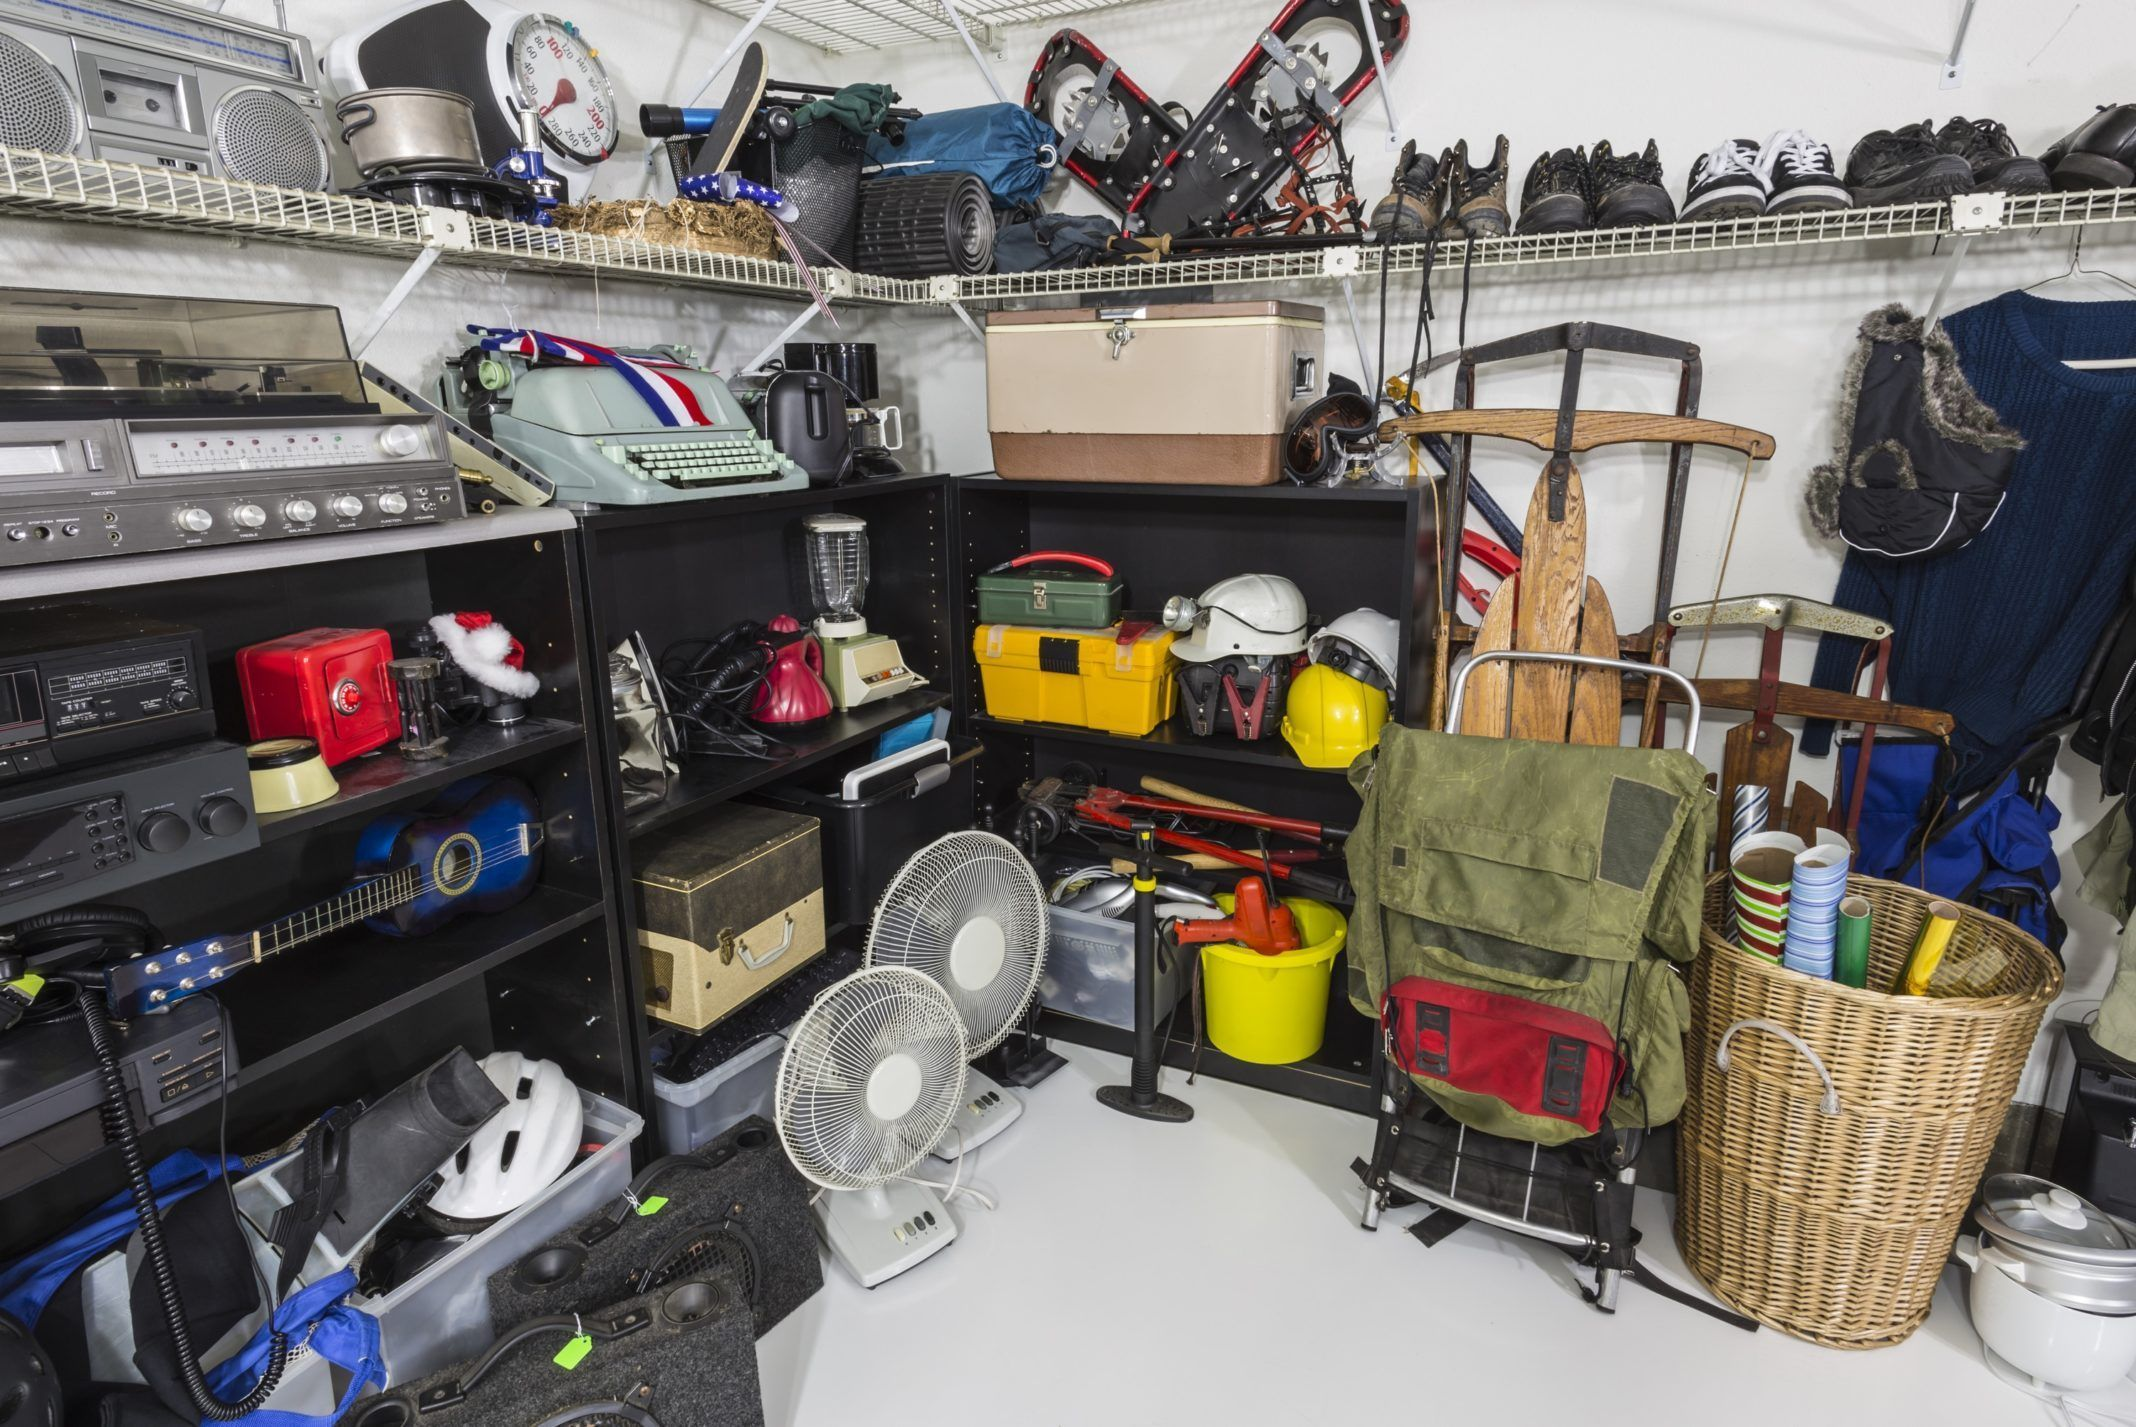 Thrift Store Flipping – 8 Best Items to Resell for a Profit #thriftstoreupcycle Thrift Store Flipping – 8 Best Items to Resell for a Profit #thriftstorefinds Thrift Store Flipping – 8 Best Items to Resell for a Profit #thriftstoreupcycle Thrift Store Flipping – 8 Best Items to Resell for a Profit #thriftstorefinds